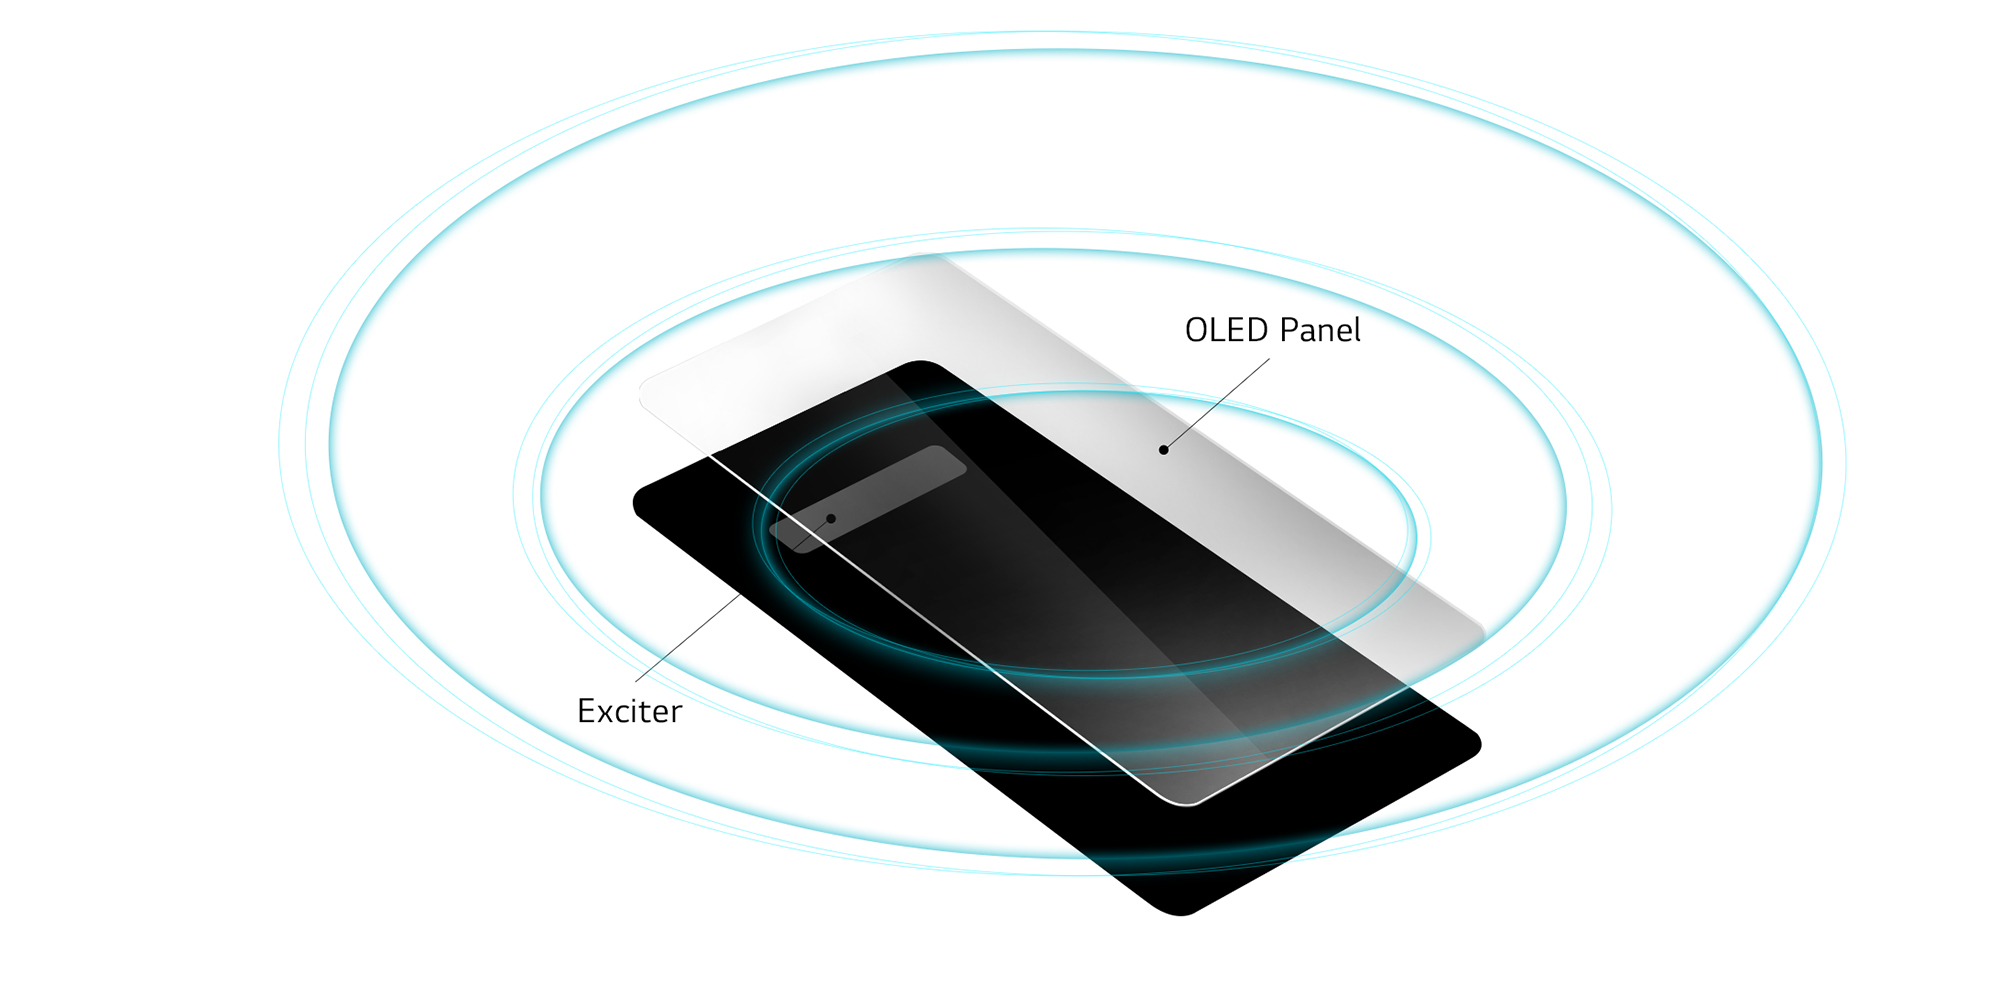 LG G8 ThinQ will come with OLED display that can be used as an audio amplifier